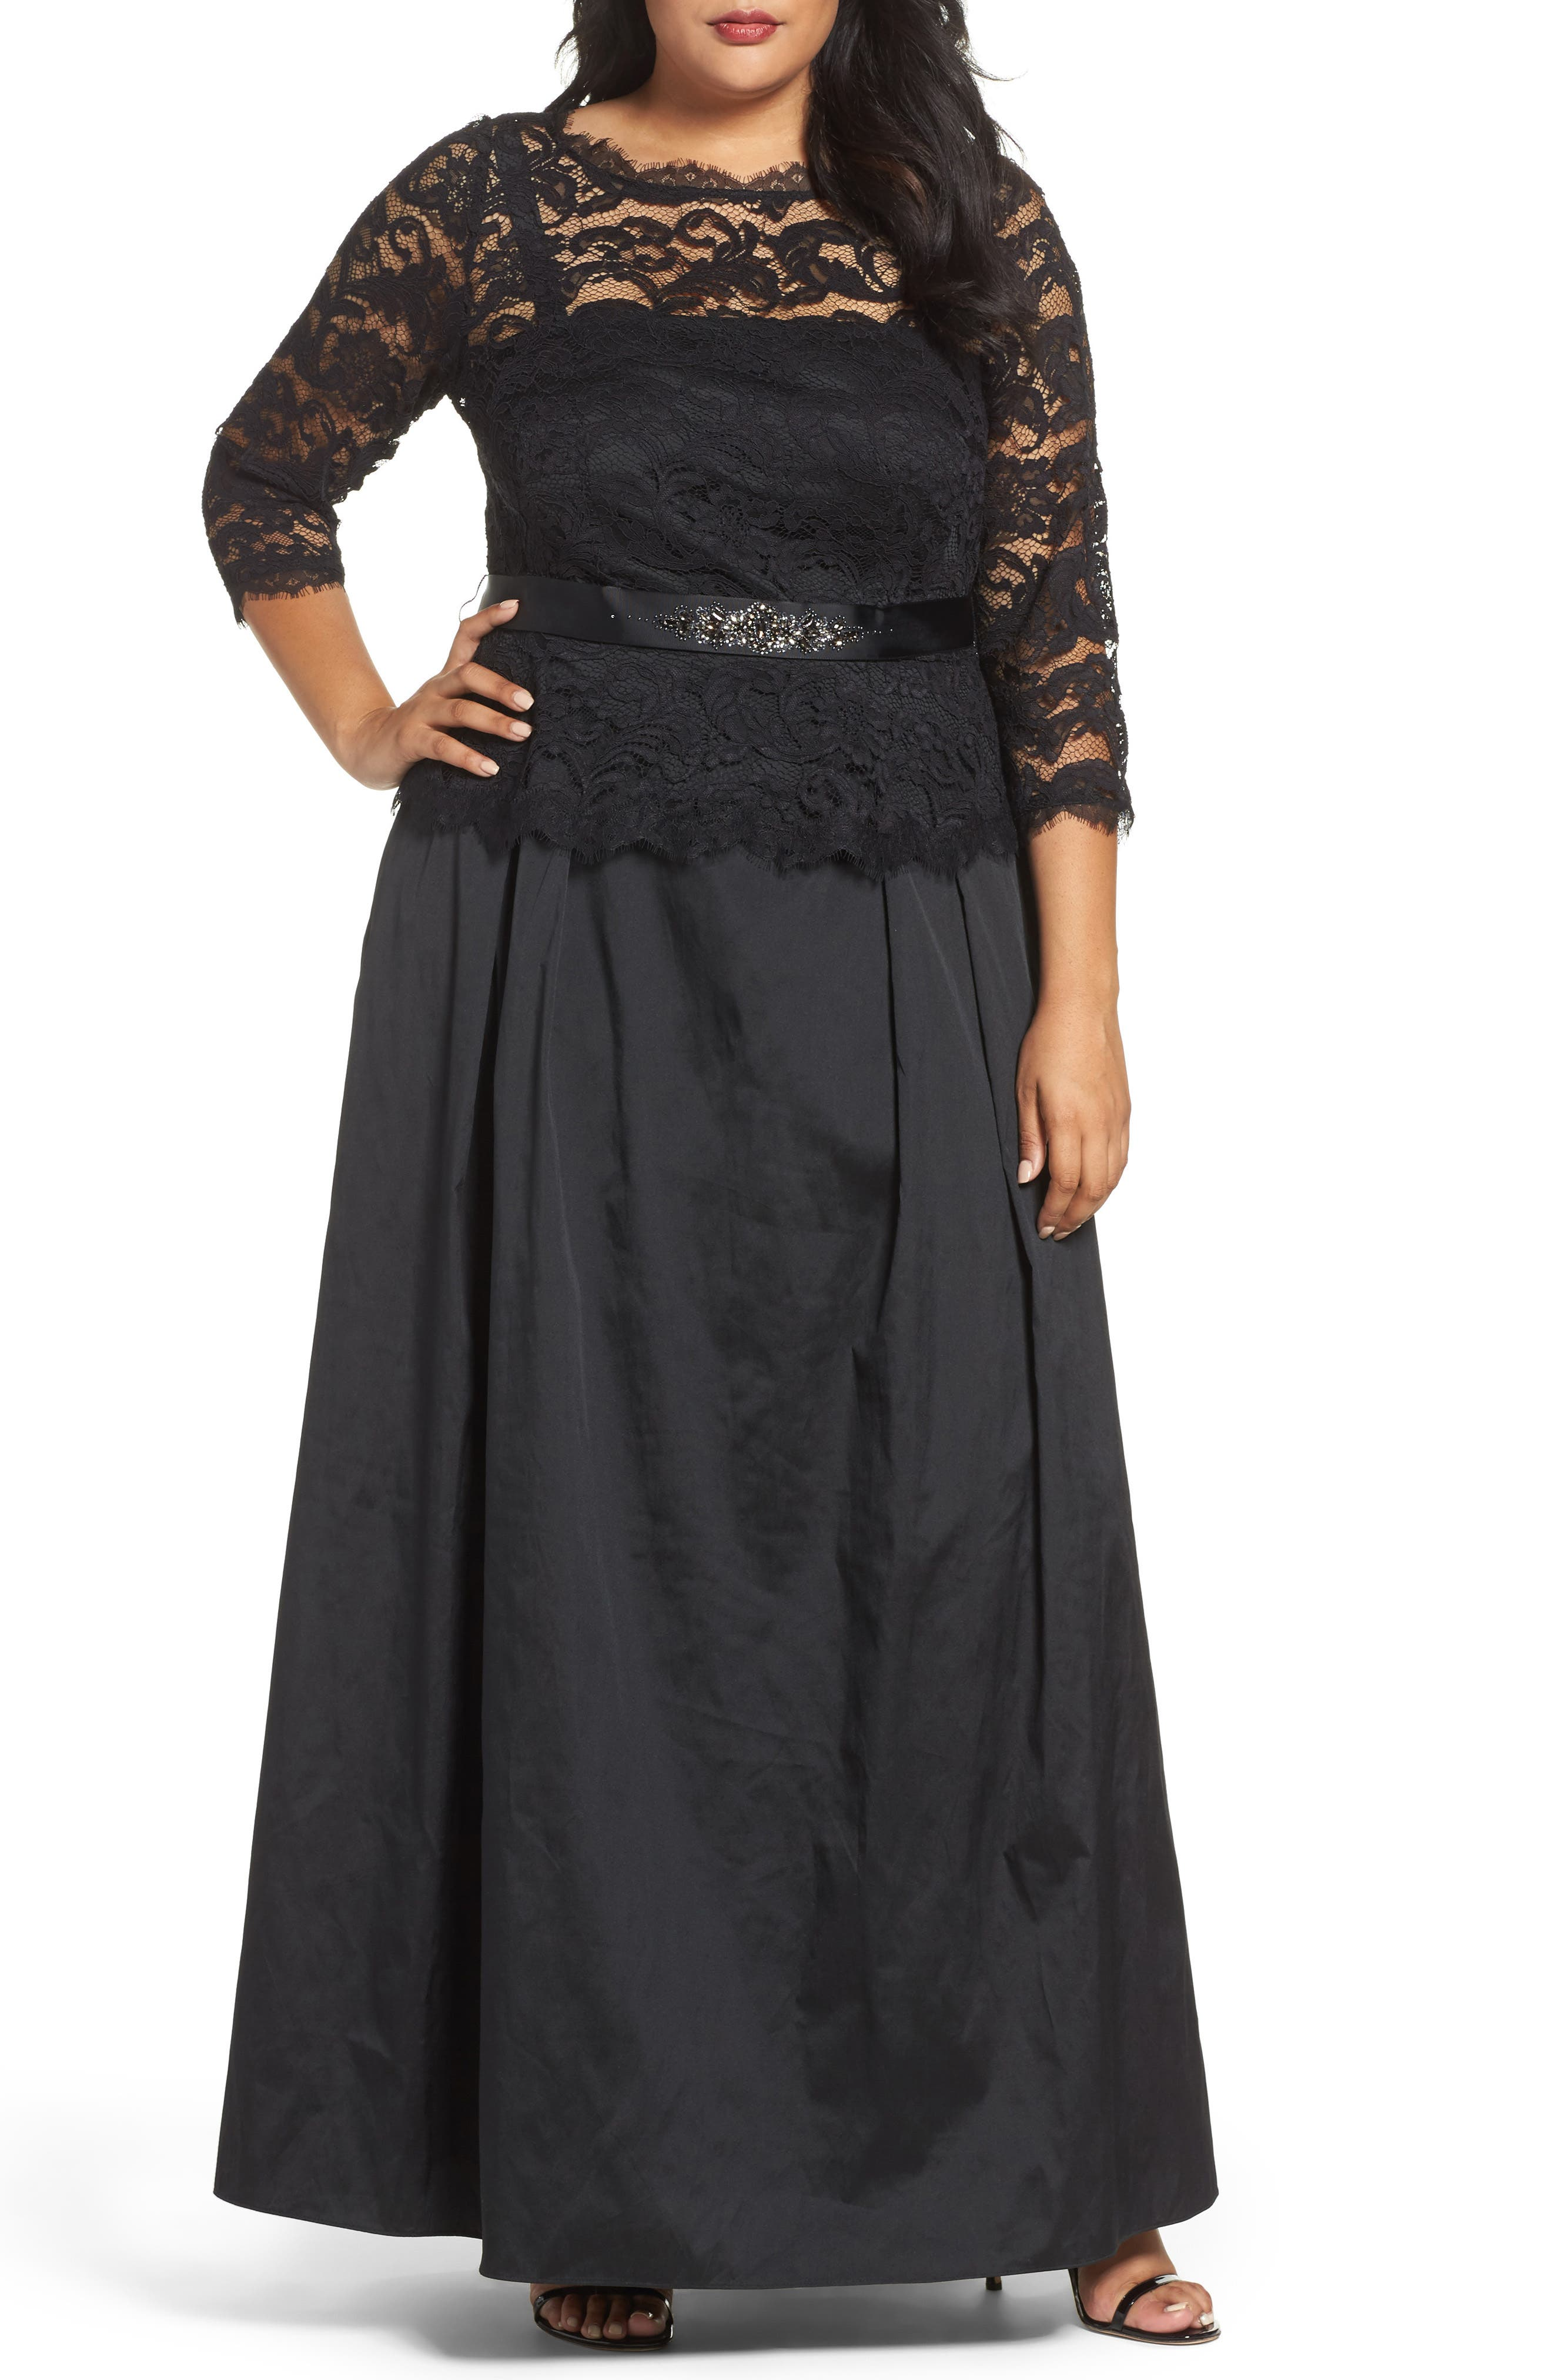 Main Image - Adrianna Papell Nouveau Scroll Illusion Lace Gown (Plus Size)